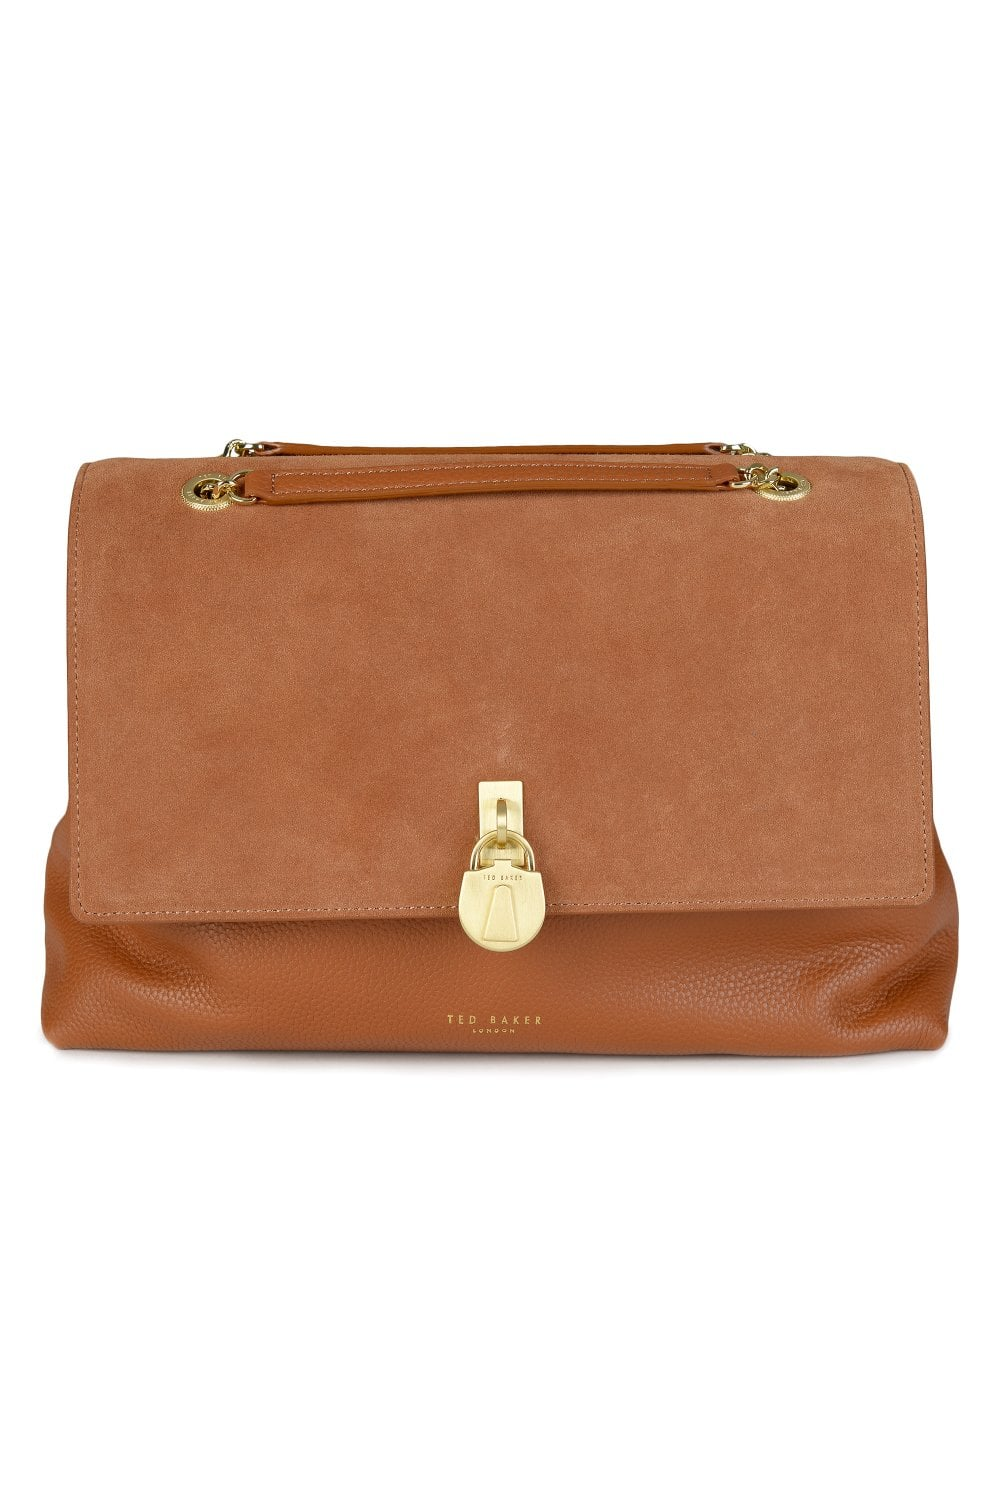 c1b839ef2a5a7 TED BAKER Ted Baker Hermiaa Shoulder Bag - Clothing from Circle ...